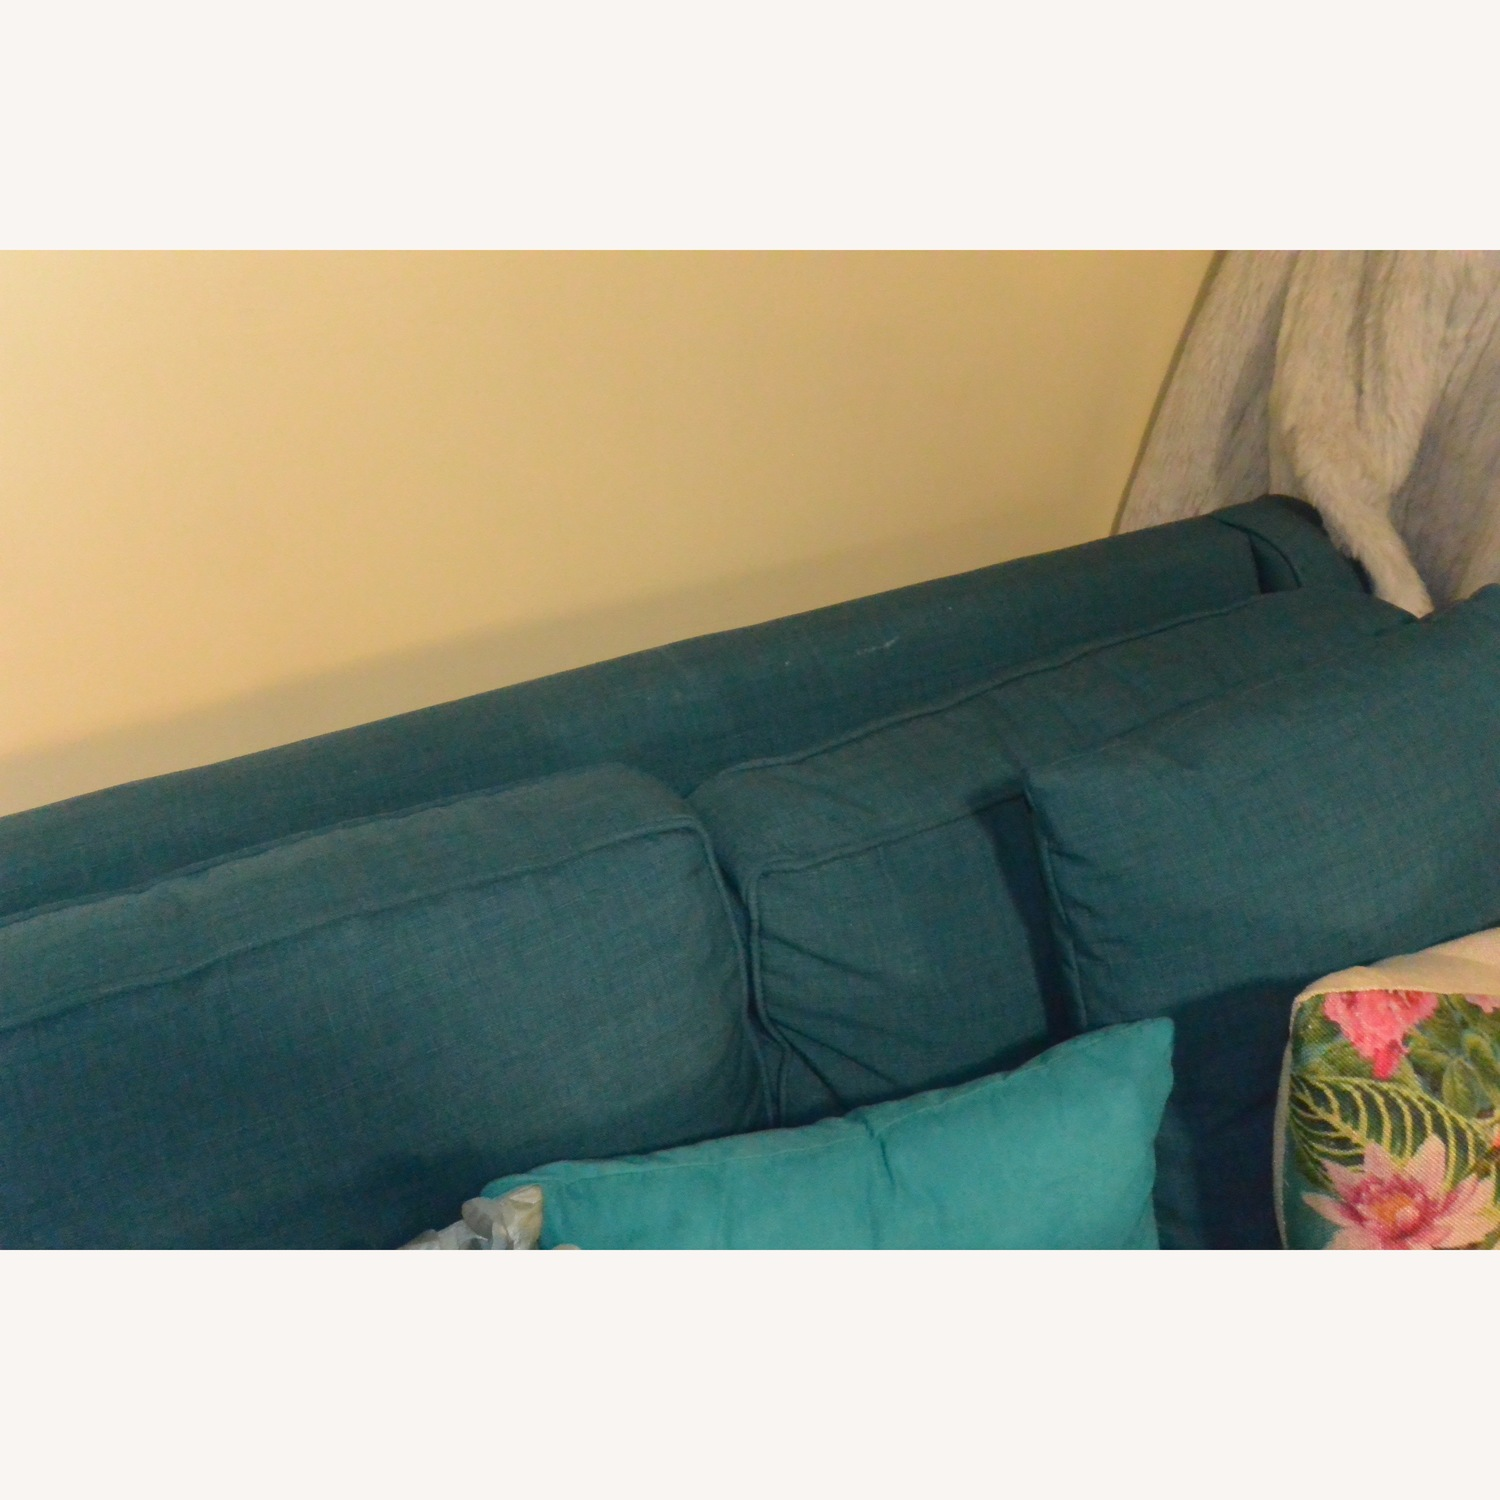 Macy's Keegan Peacock Blue Sectional Sofa w/ Pillows - image-3